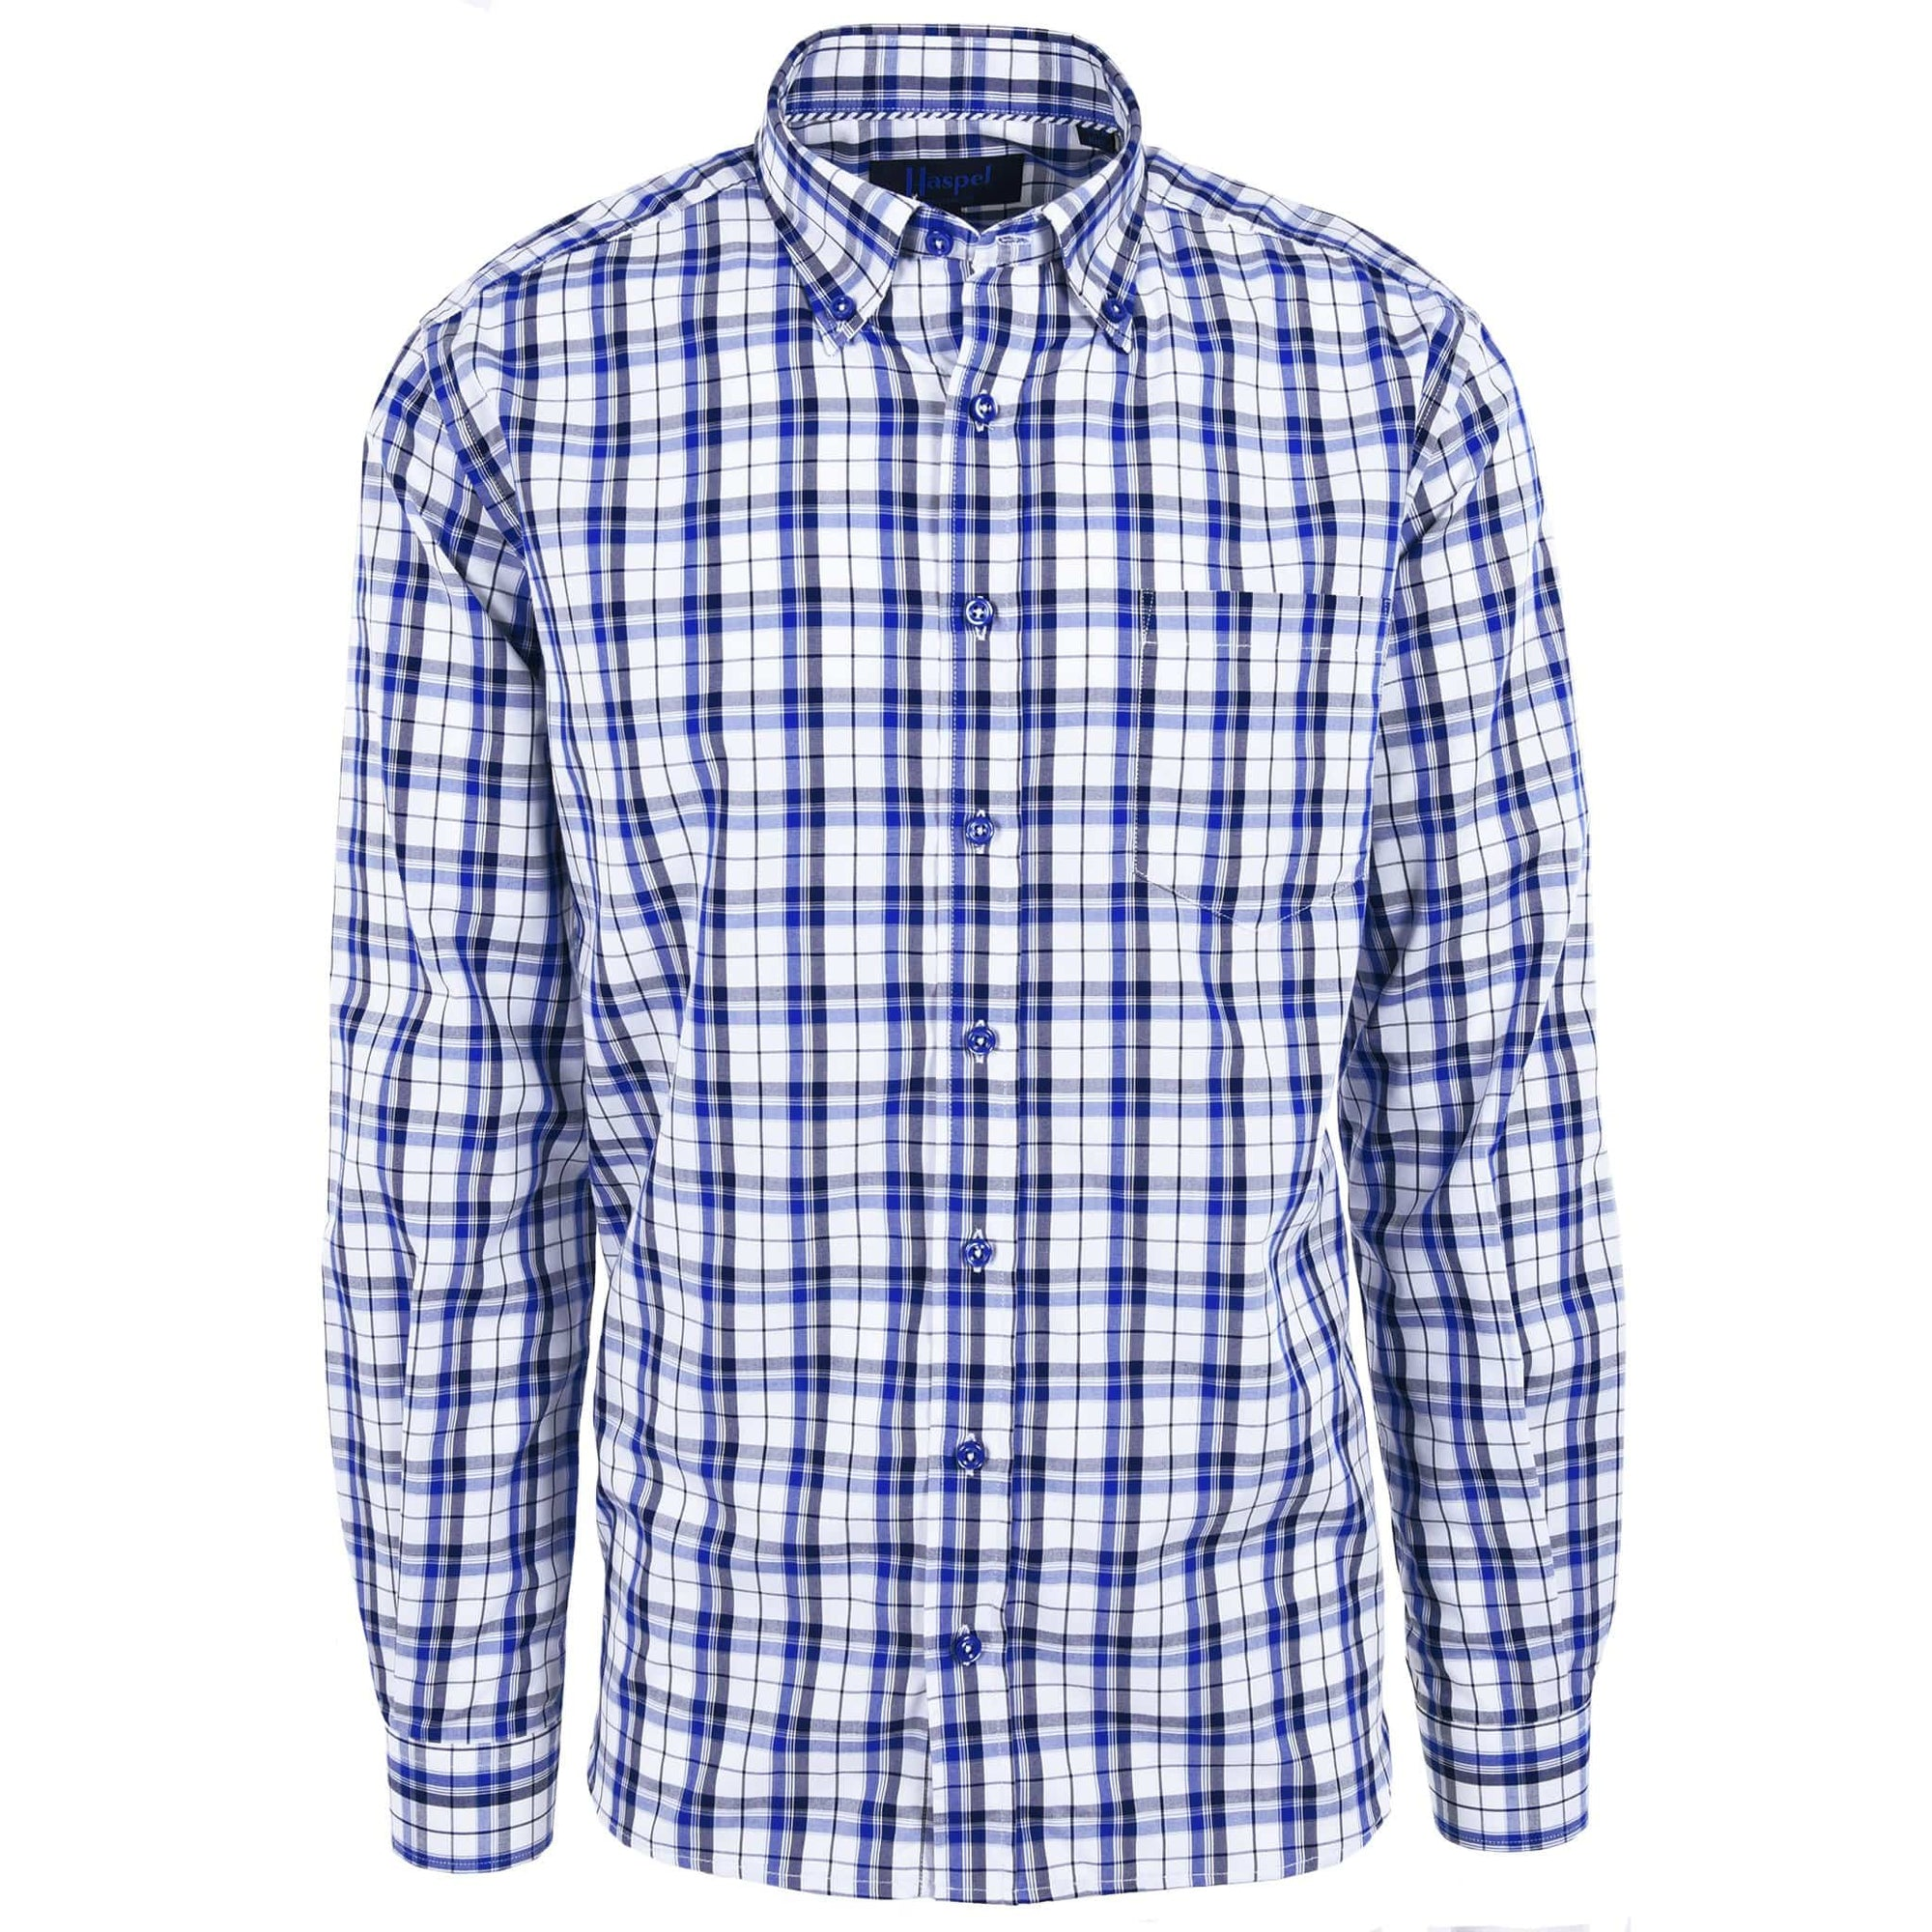 Franklin Black & Blue Plaid - Haspel Clothing